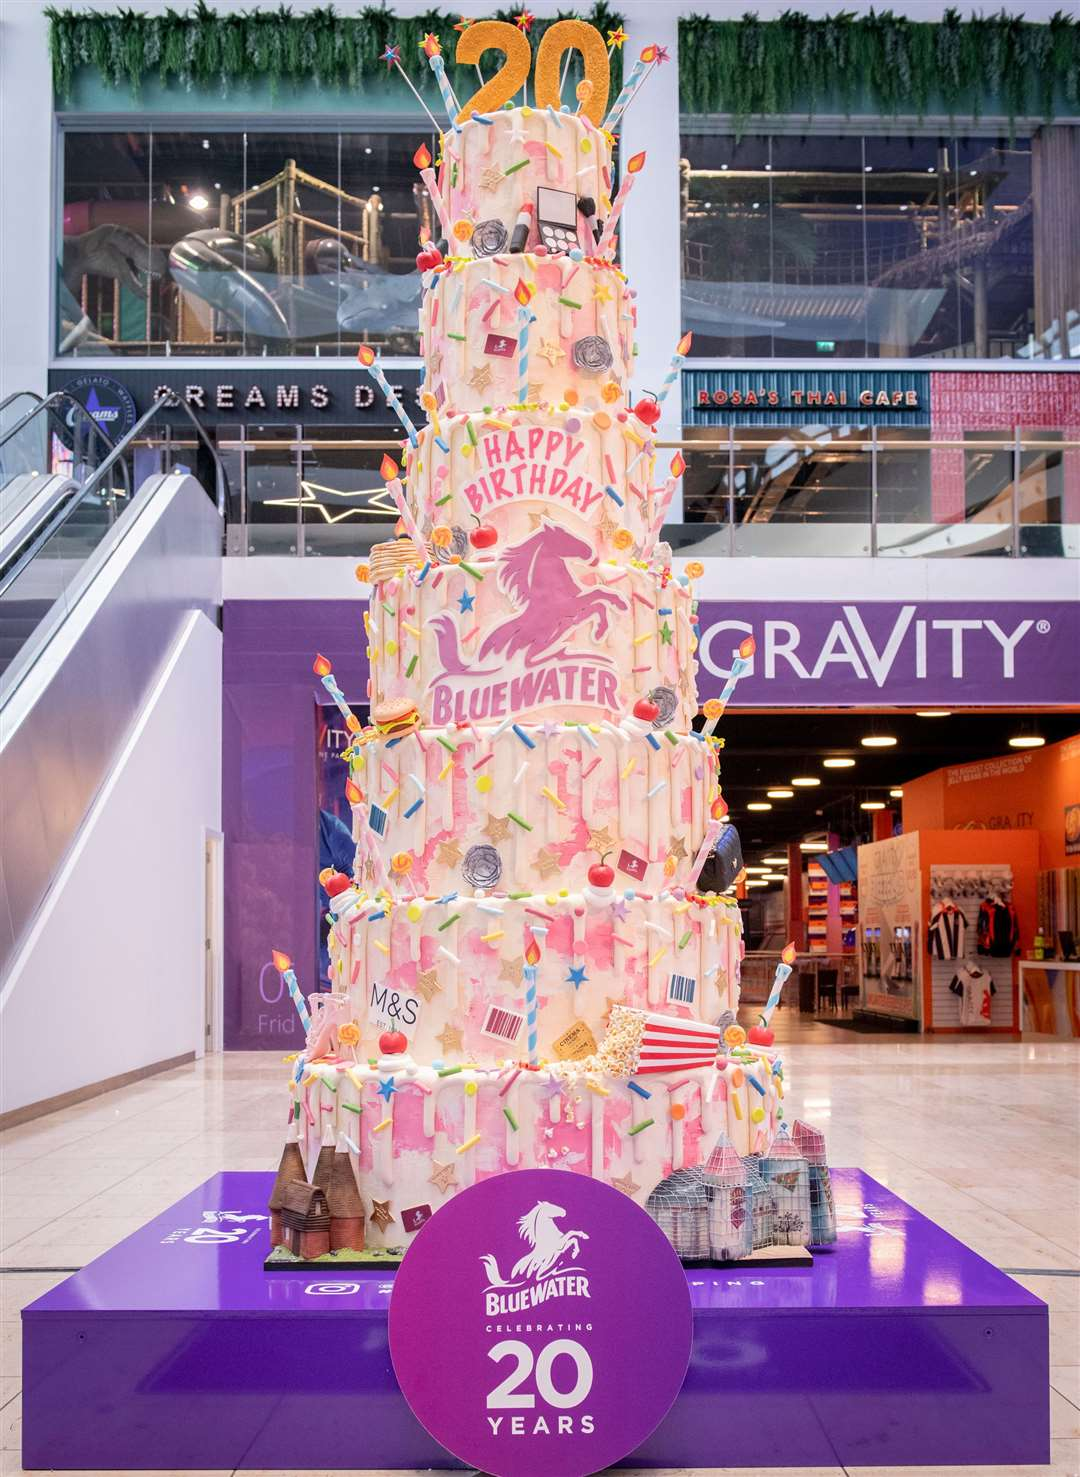 Bluewater's impressive 20th birthday cake